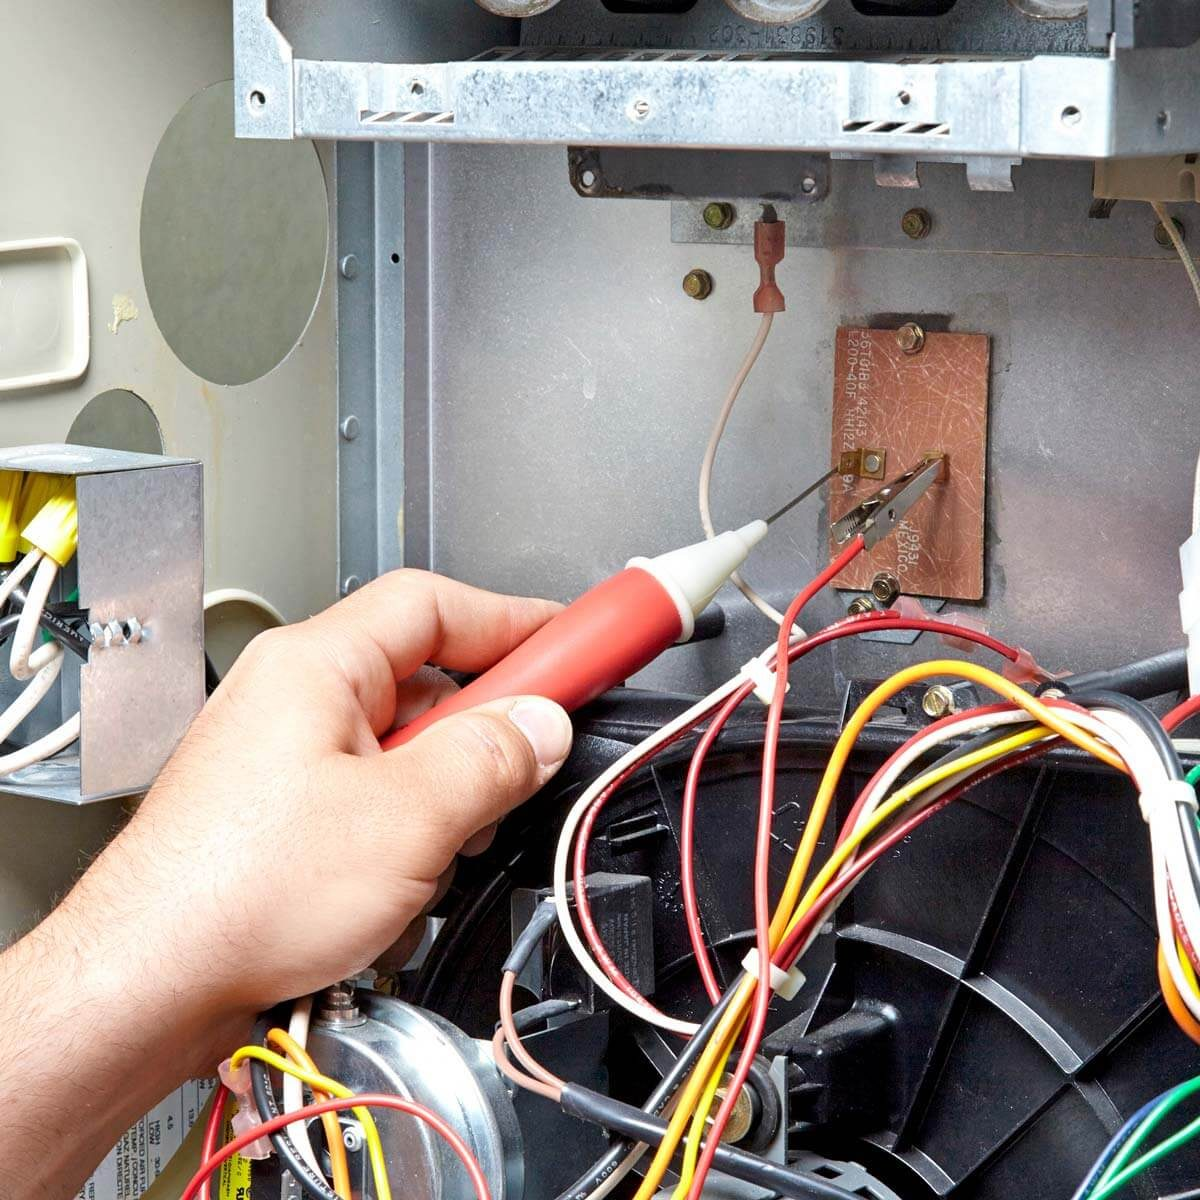 Test the High-limit Switch